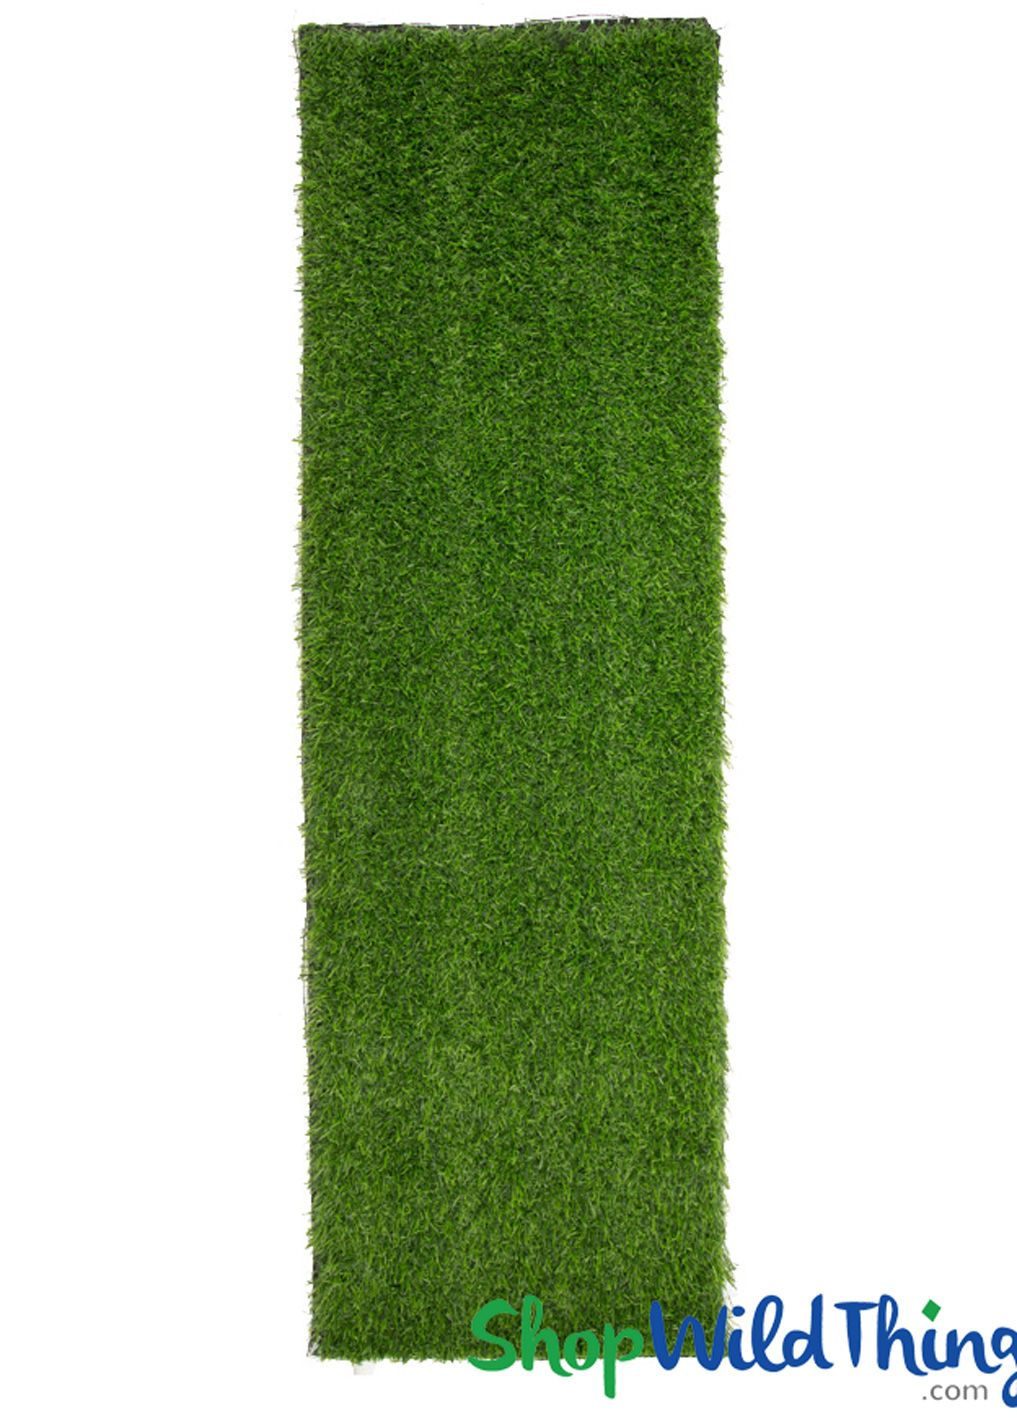 Coming Soon Landscape Grass Mat Runner 12 X 31 1 2 Artificial Grass Mat Artificial Turf Grasses Landscaping